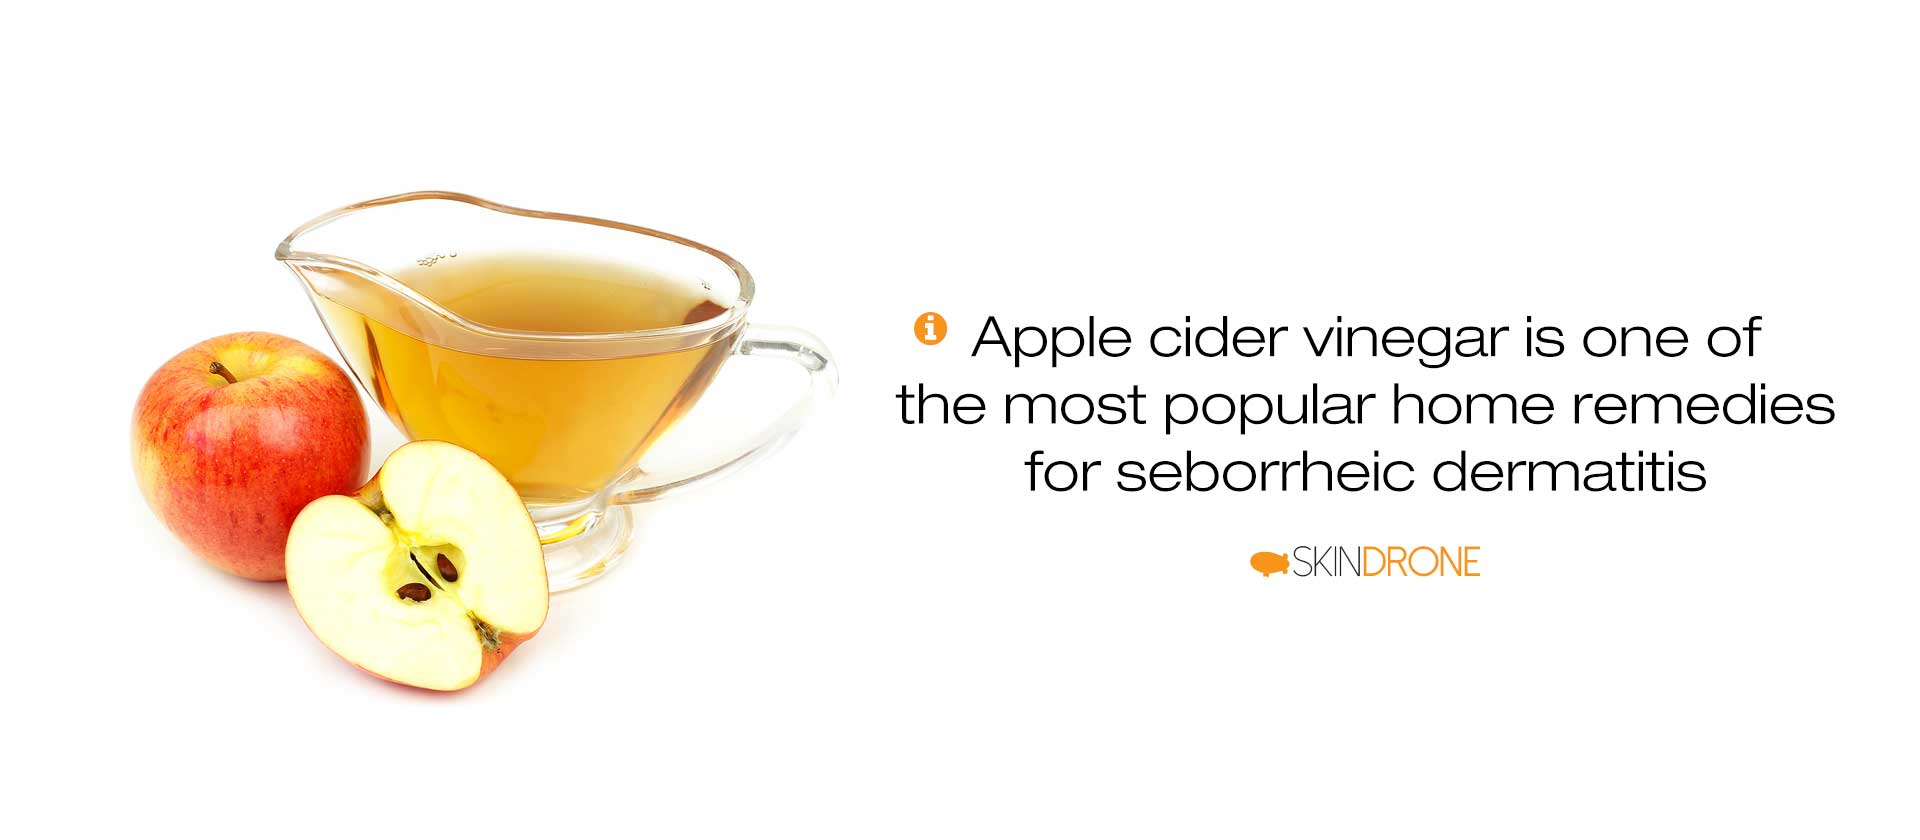 Despite the lack of evidence, apple cider vinegar remains one of the most popular home remedies for scalp seborrheic dermatitis